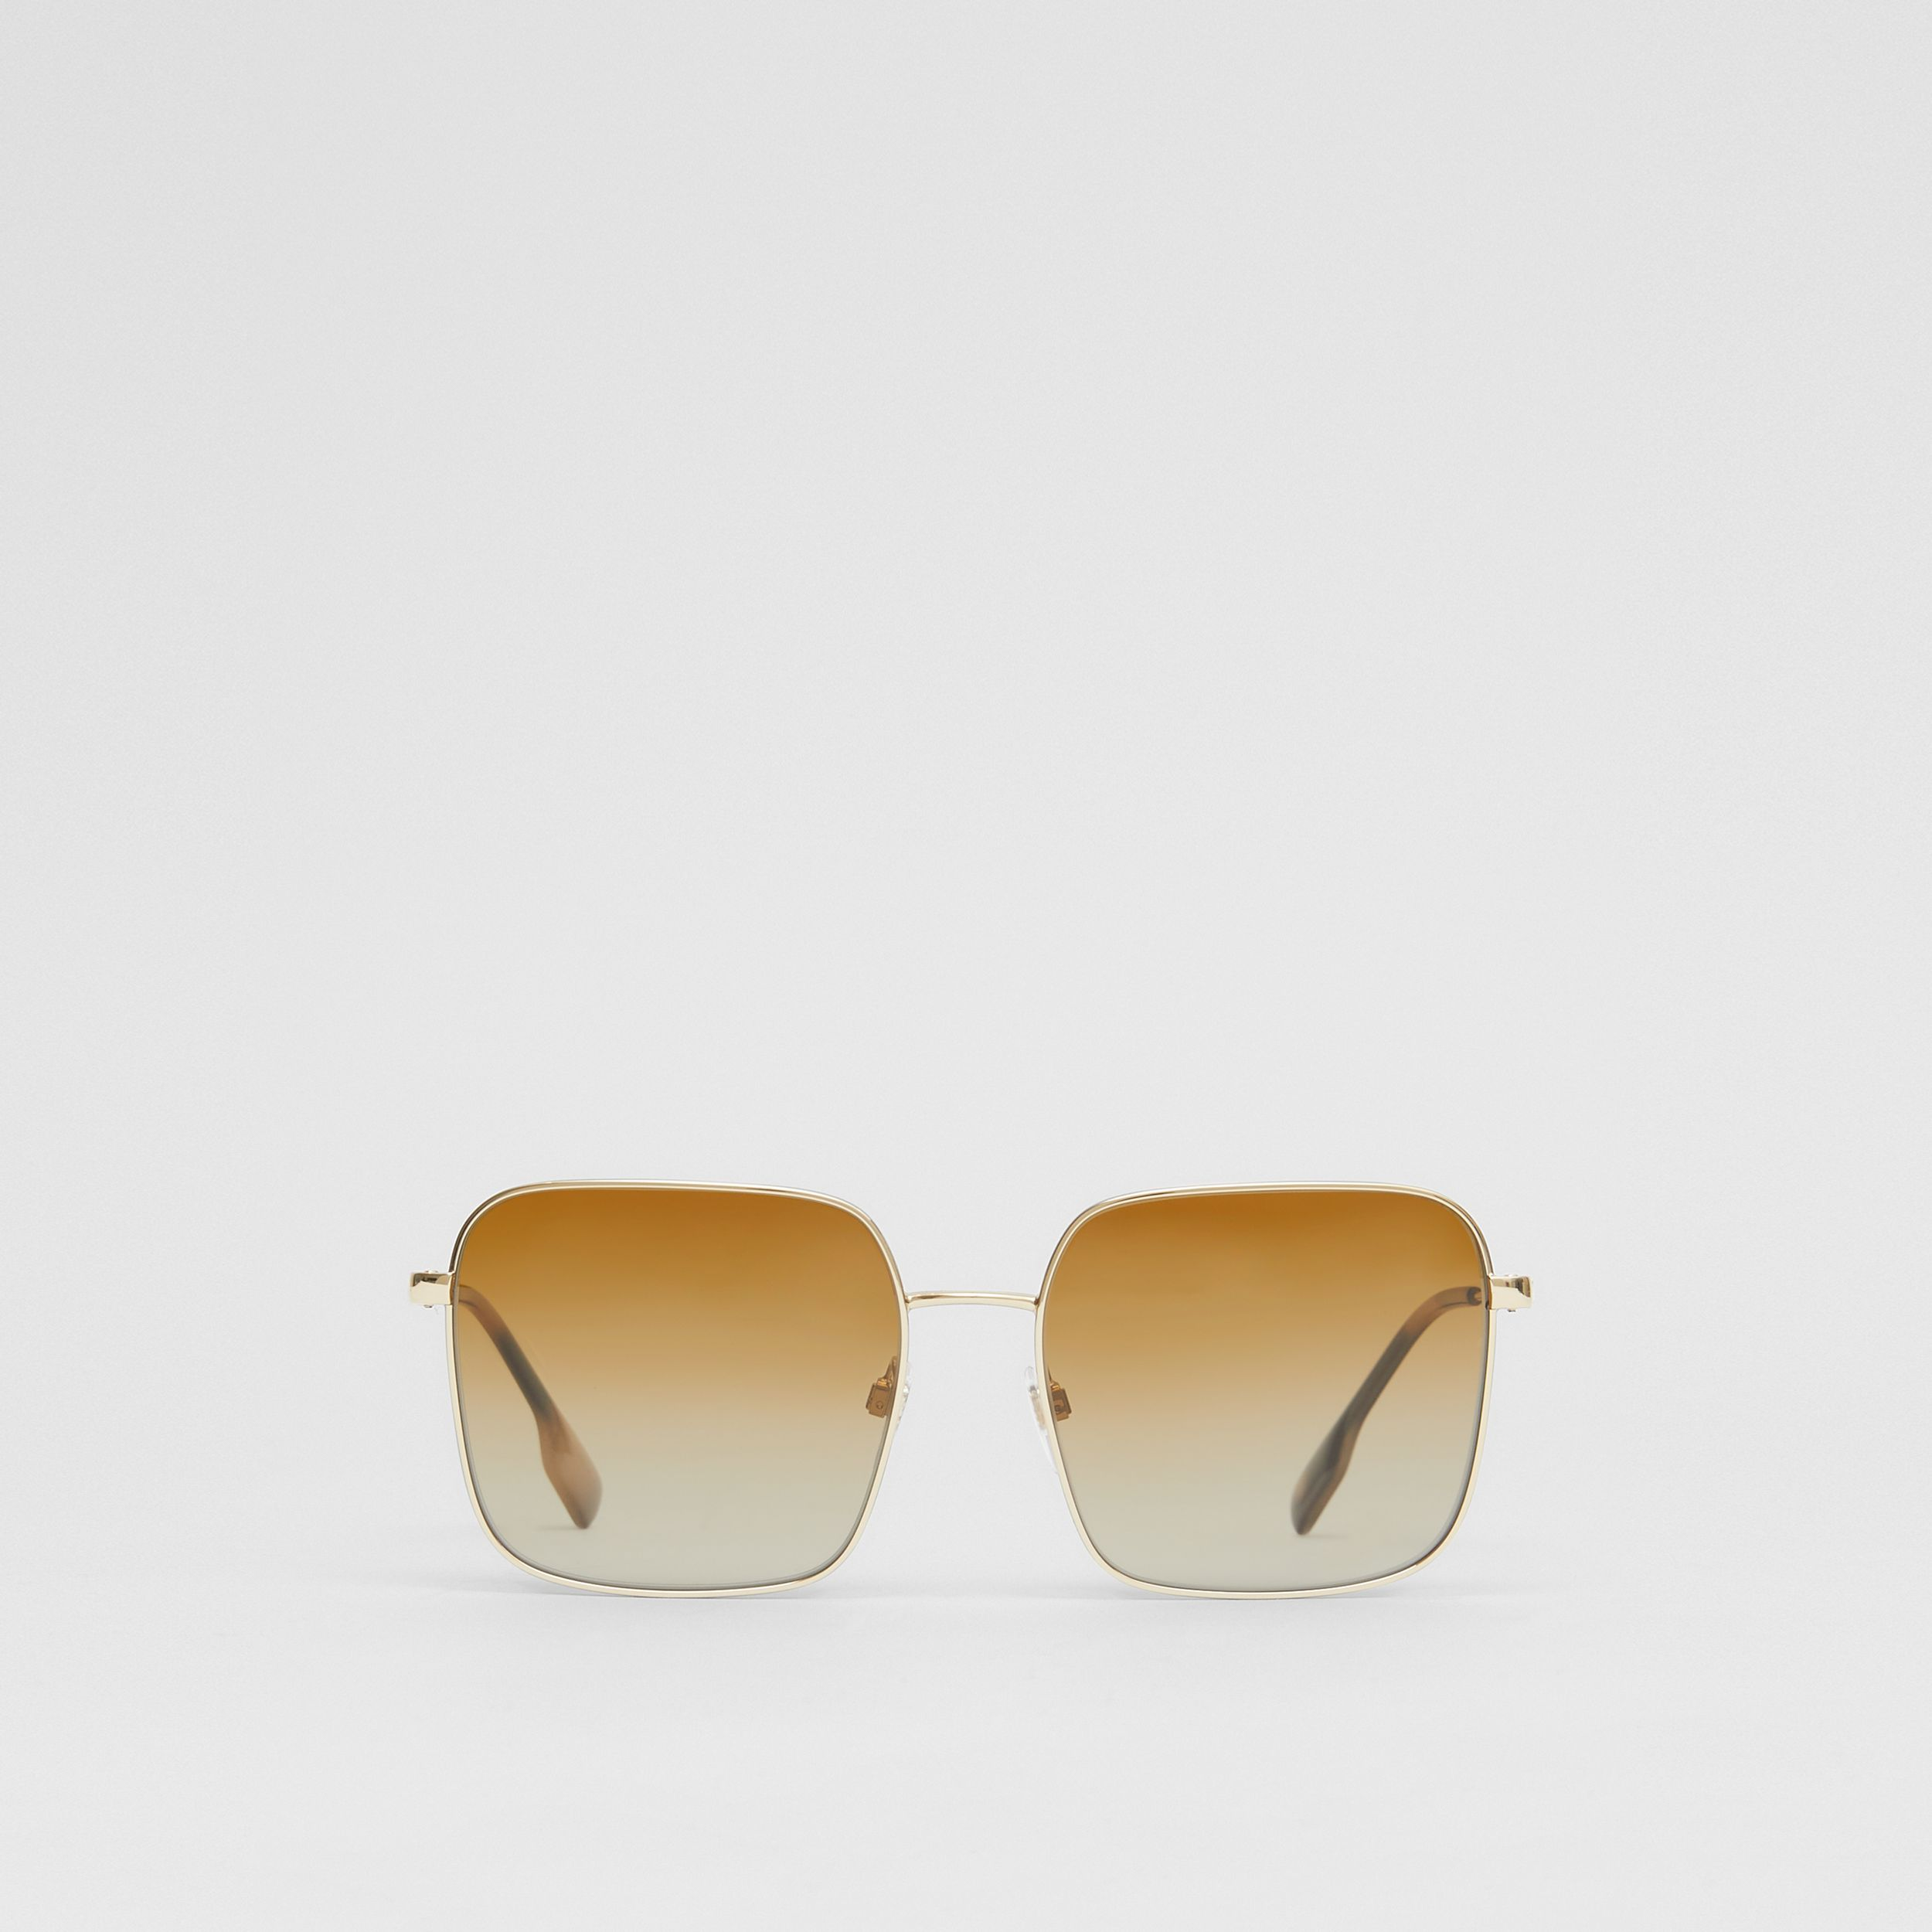 Oversized Square Frame Sunglasses in Honey Tortoiseshell - Women | Burberry - 1